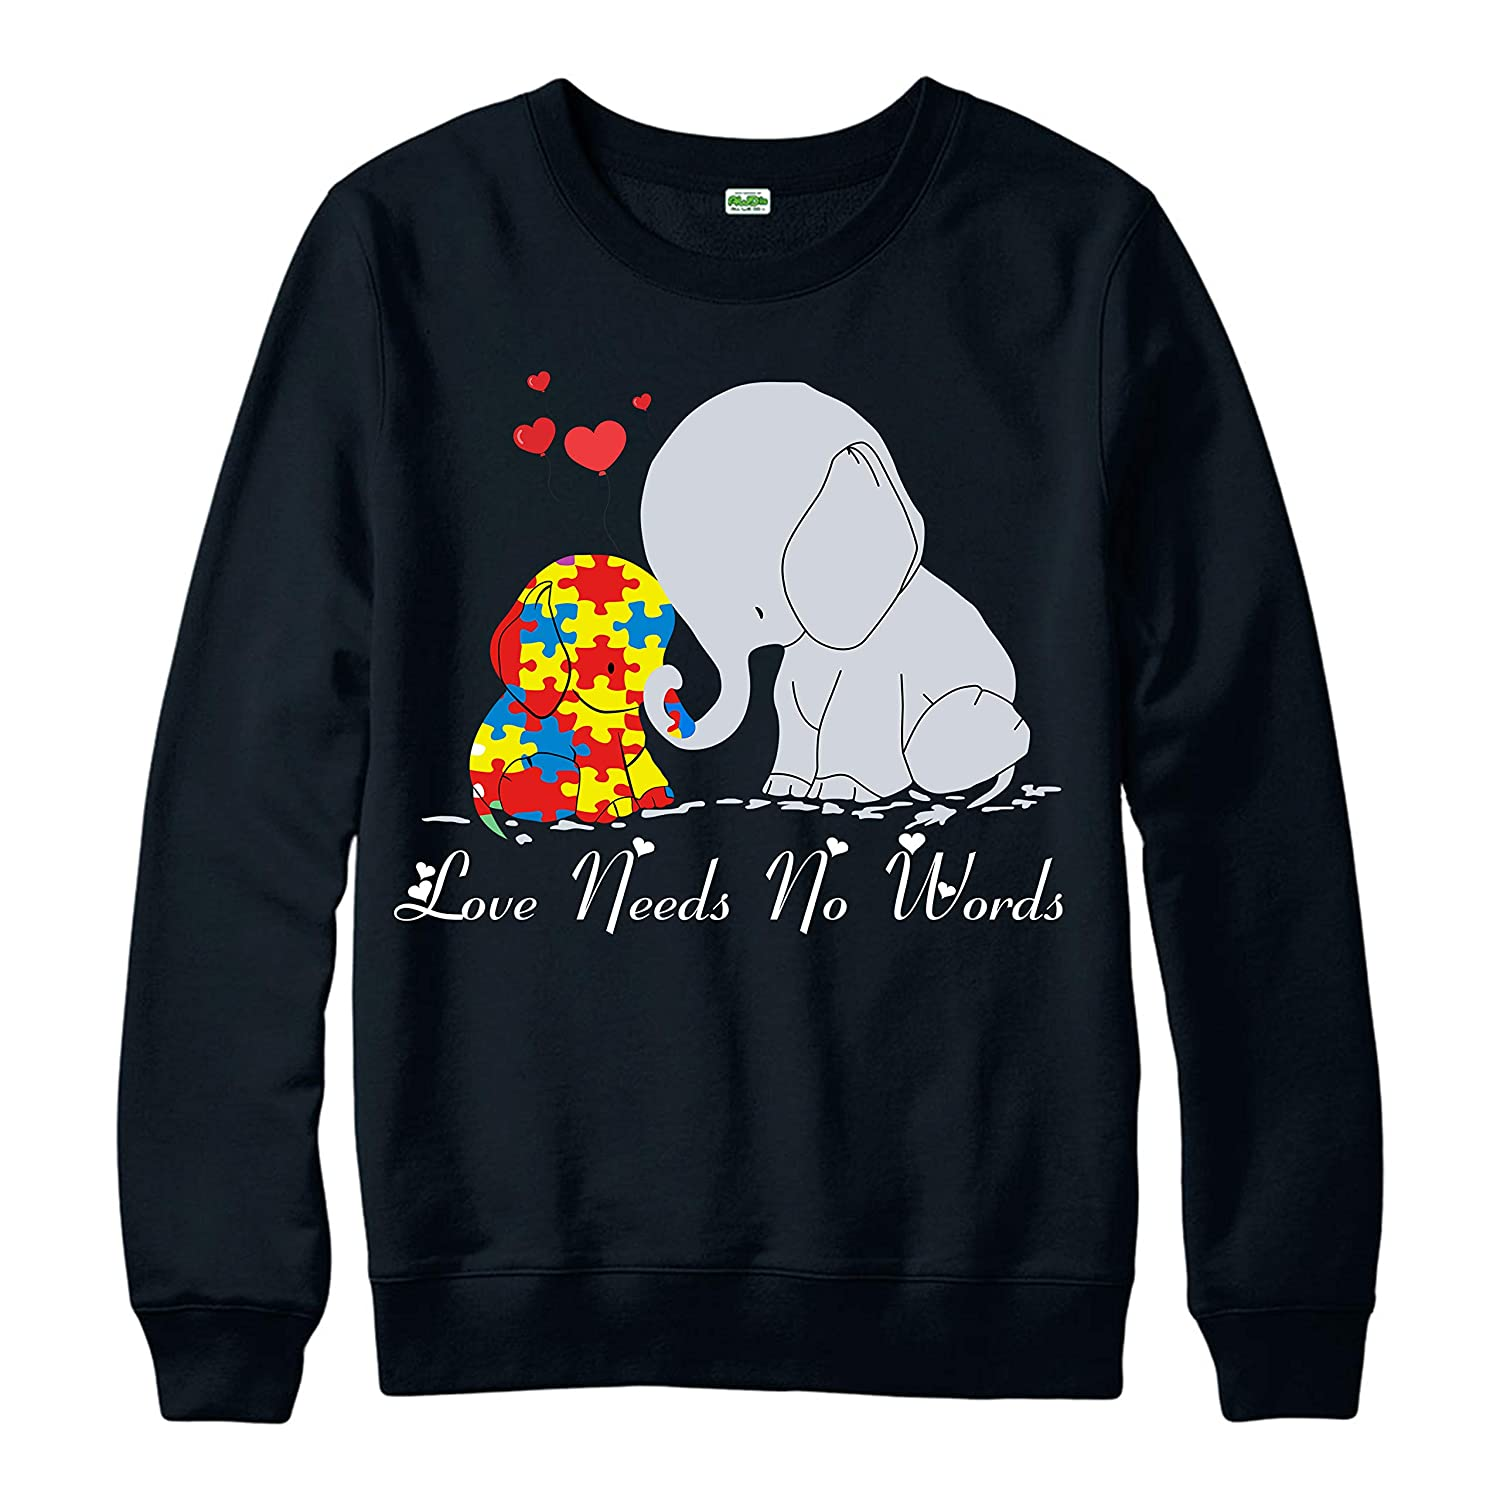 Spoofy Clothing World Autism Awareness Day Jumper Love Needs No Words Autism Awareness Health Awareness Gift Kids /& Adults Size Jumper Top